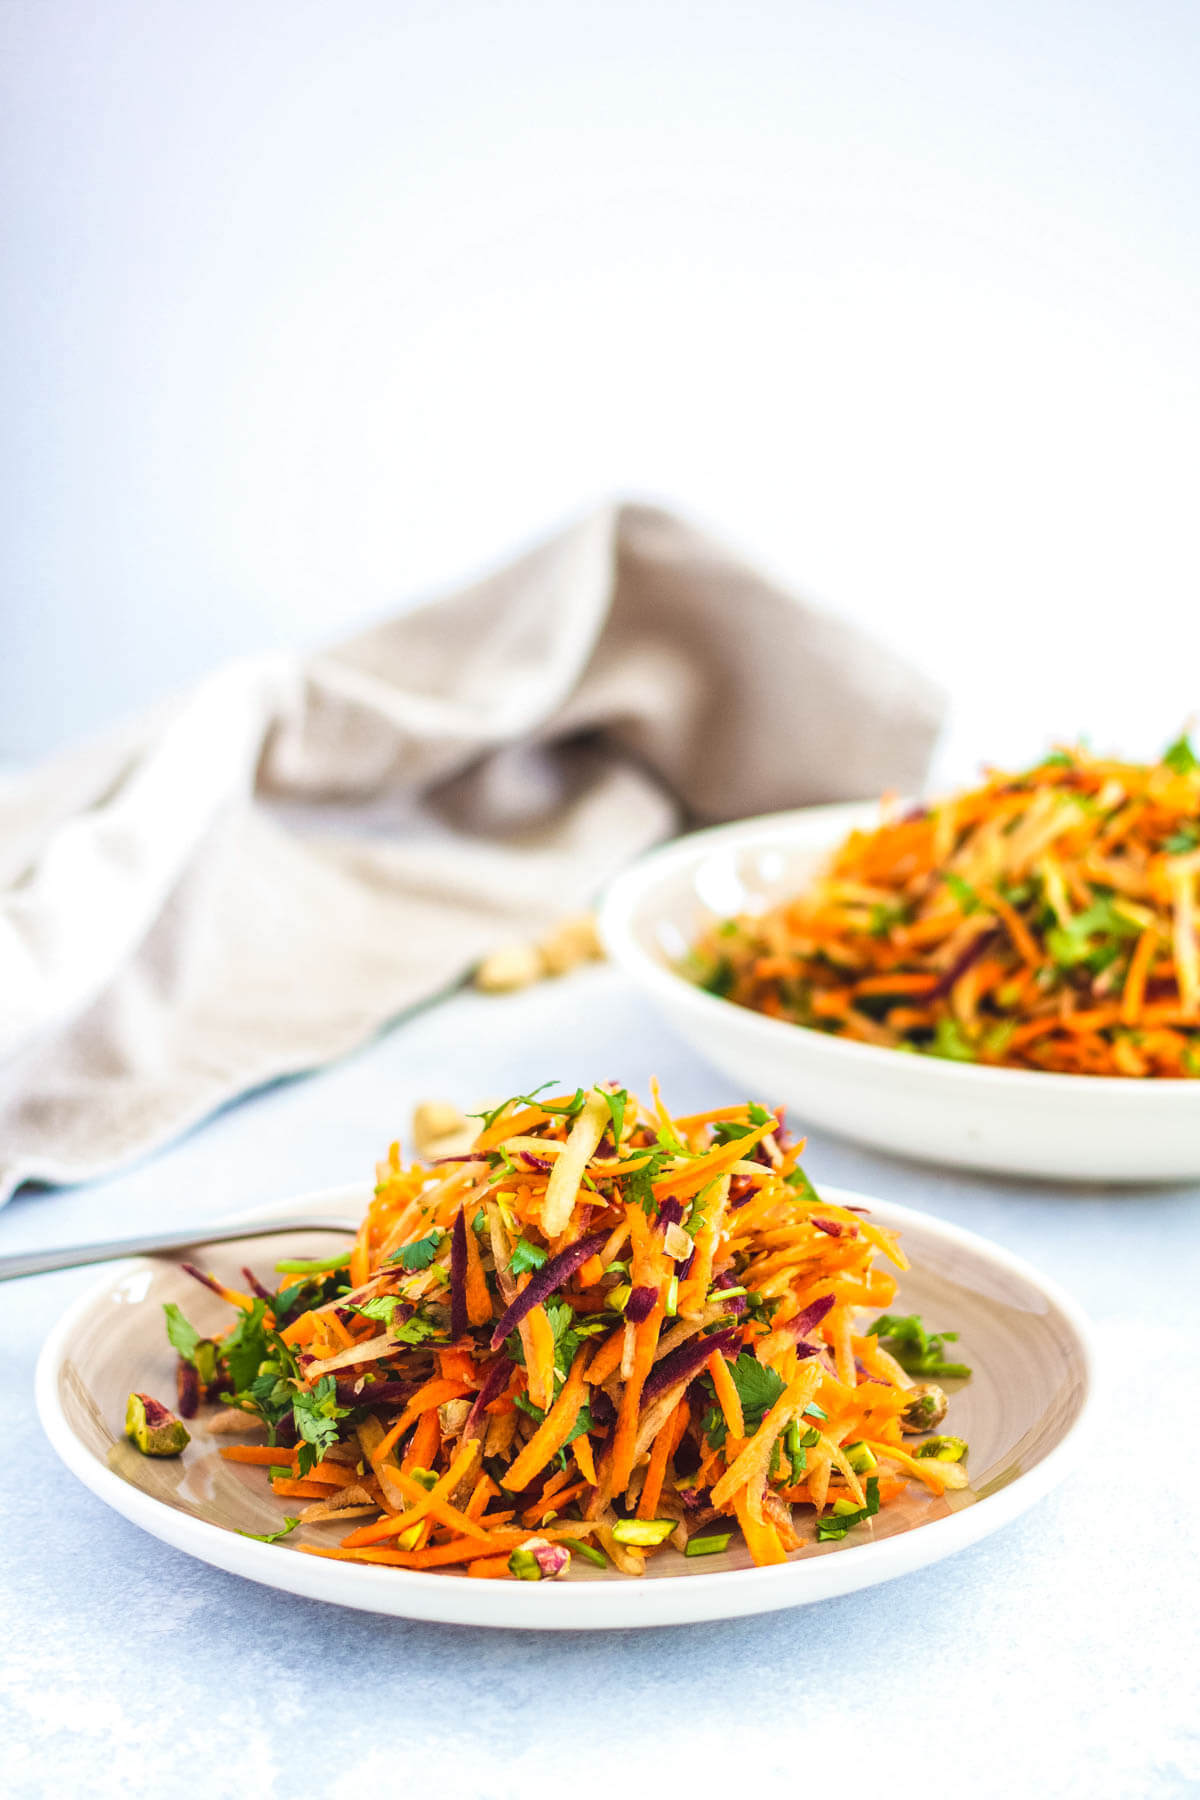 A white plate filled with colourful grated carrot salad.